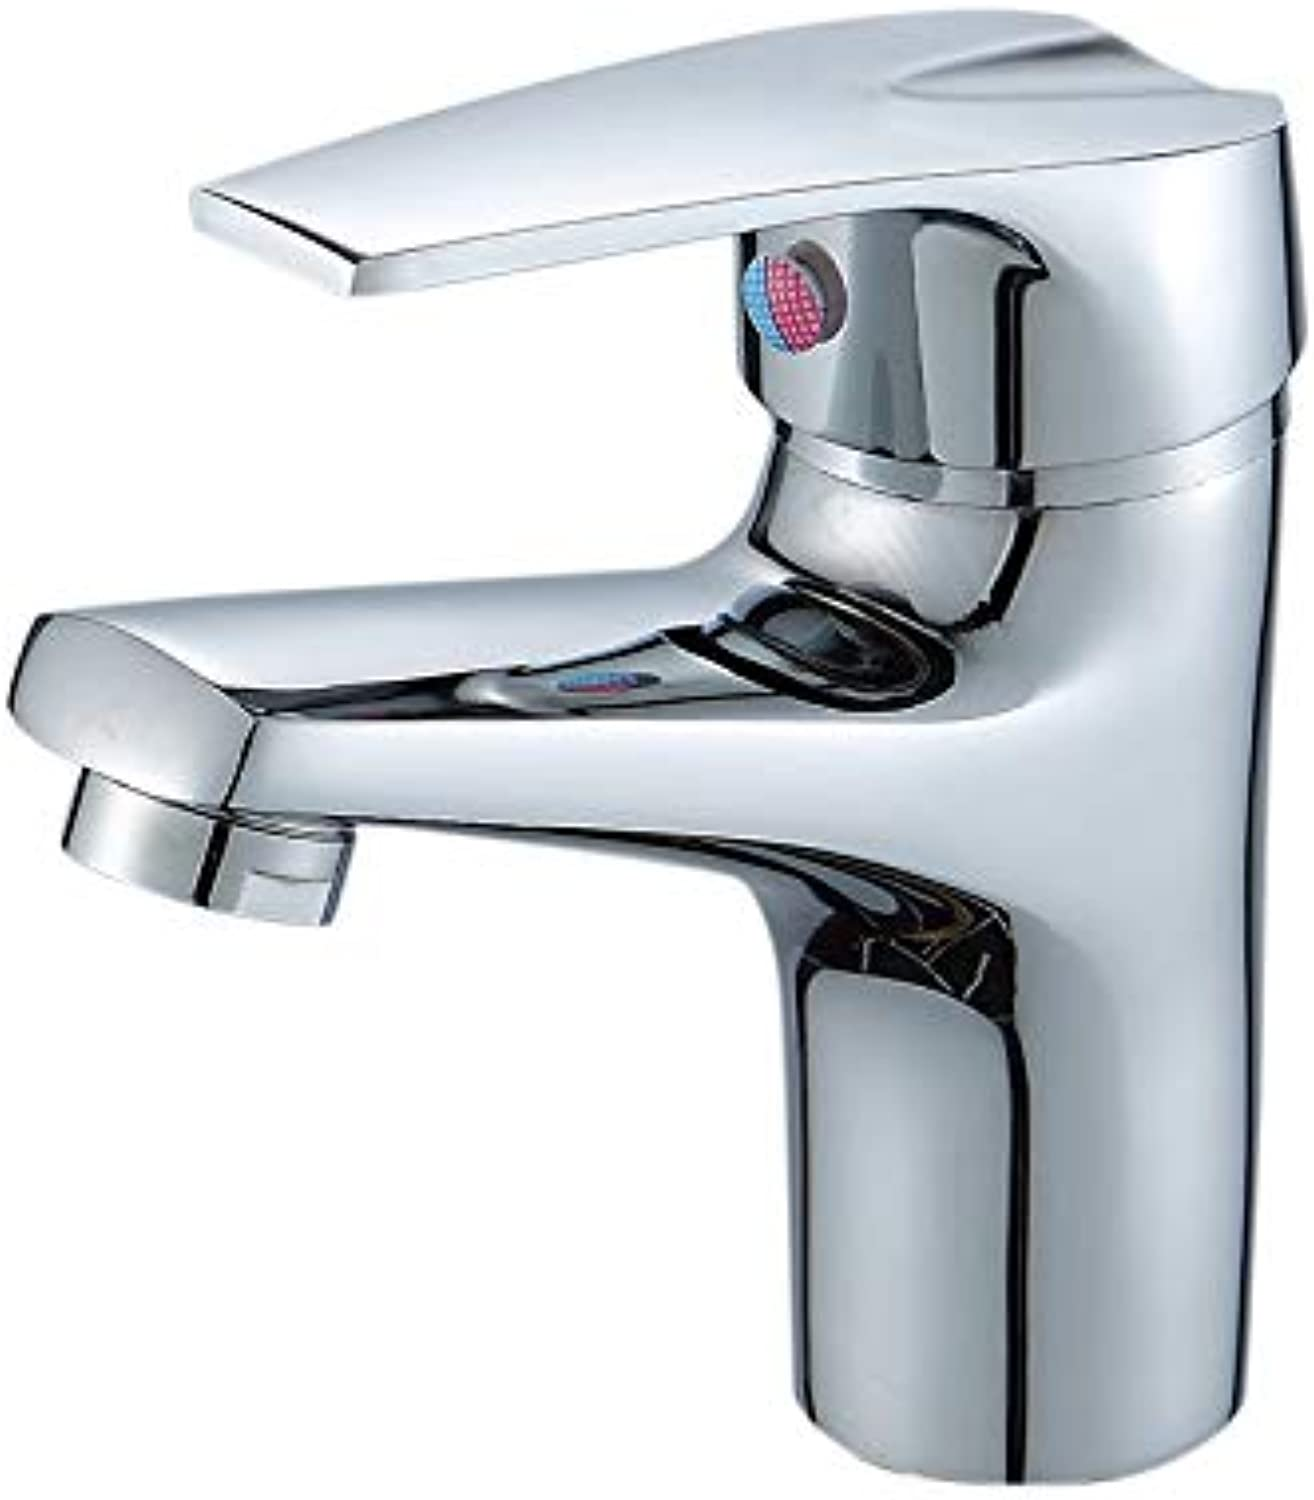 redOOY Taps Bathroom Sink Taps Shower Tapsbasin Faucet Basin Faucet Single Hole Single Handle Hot And Cold Basin Above Counter Basin Copper